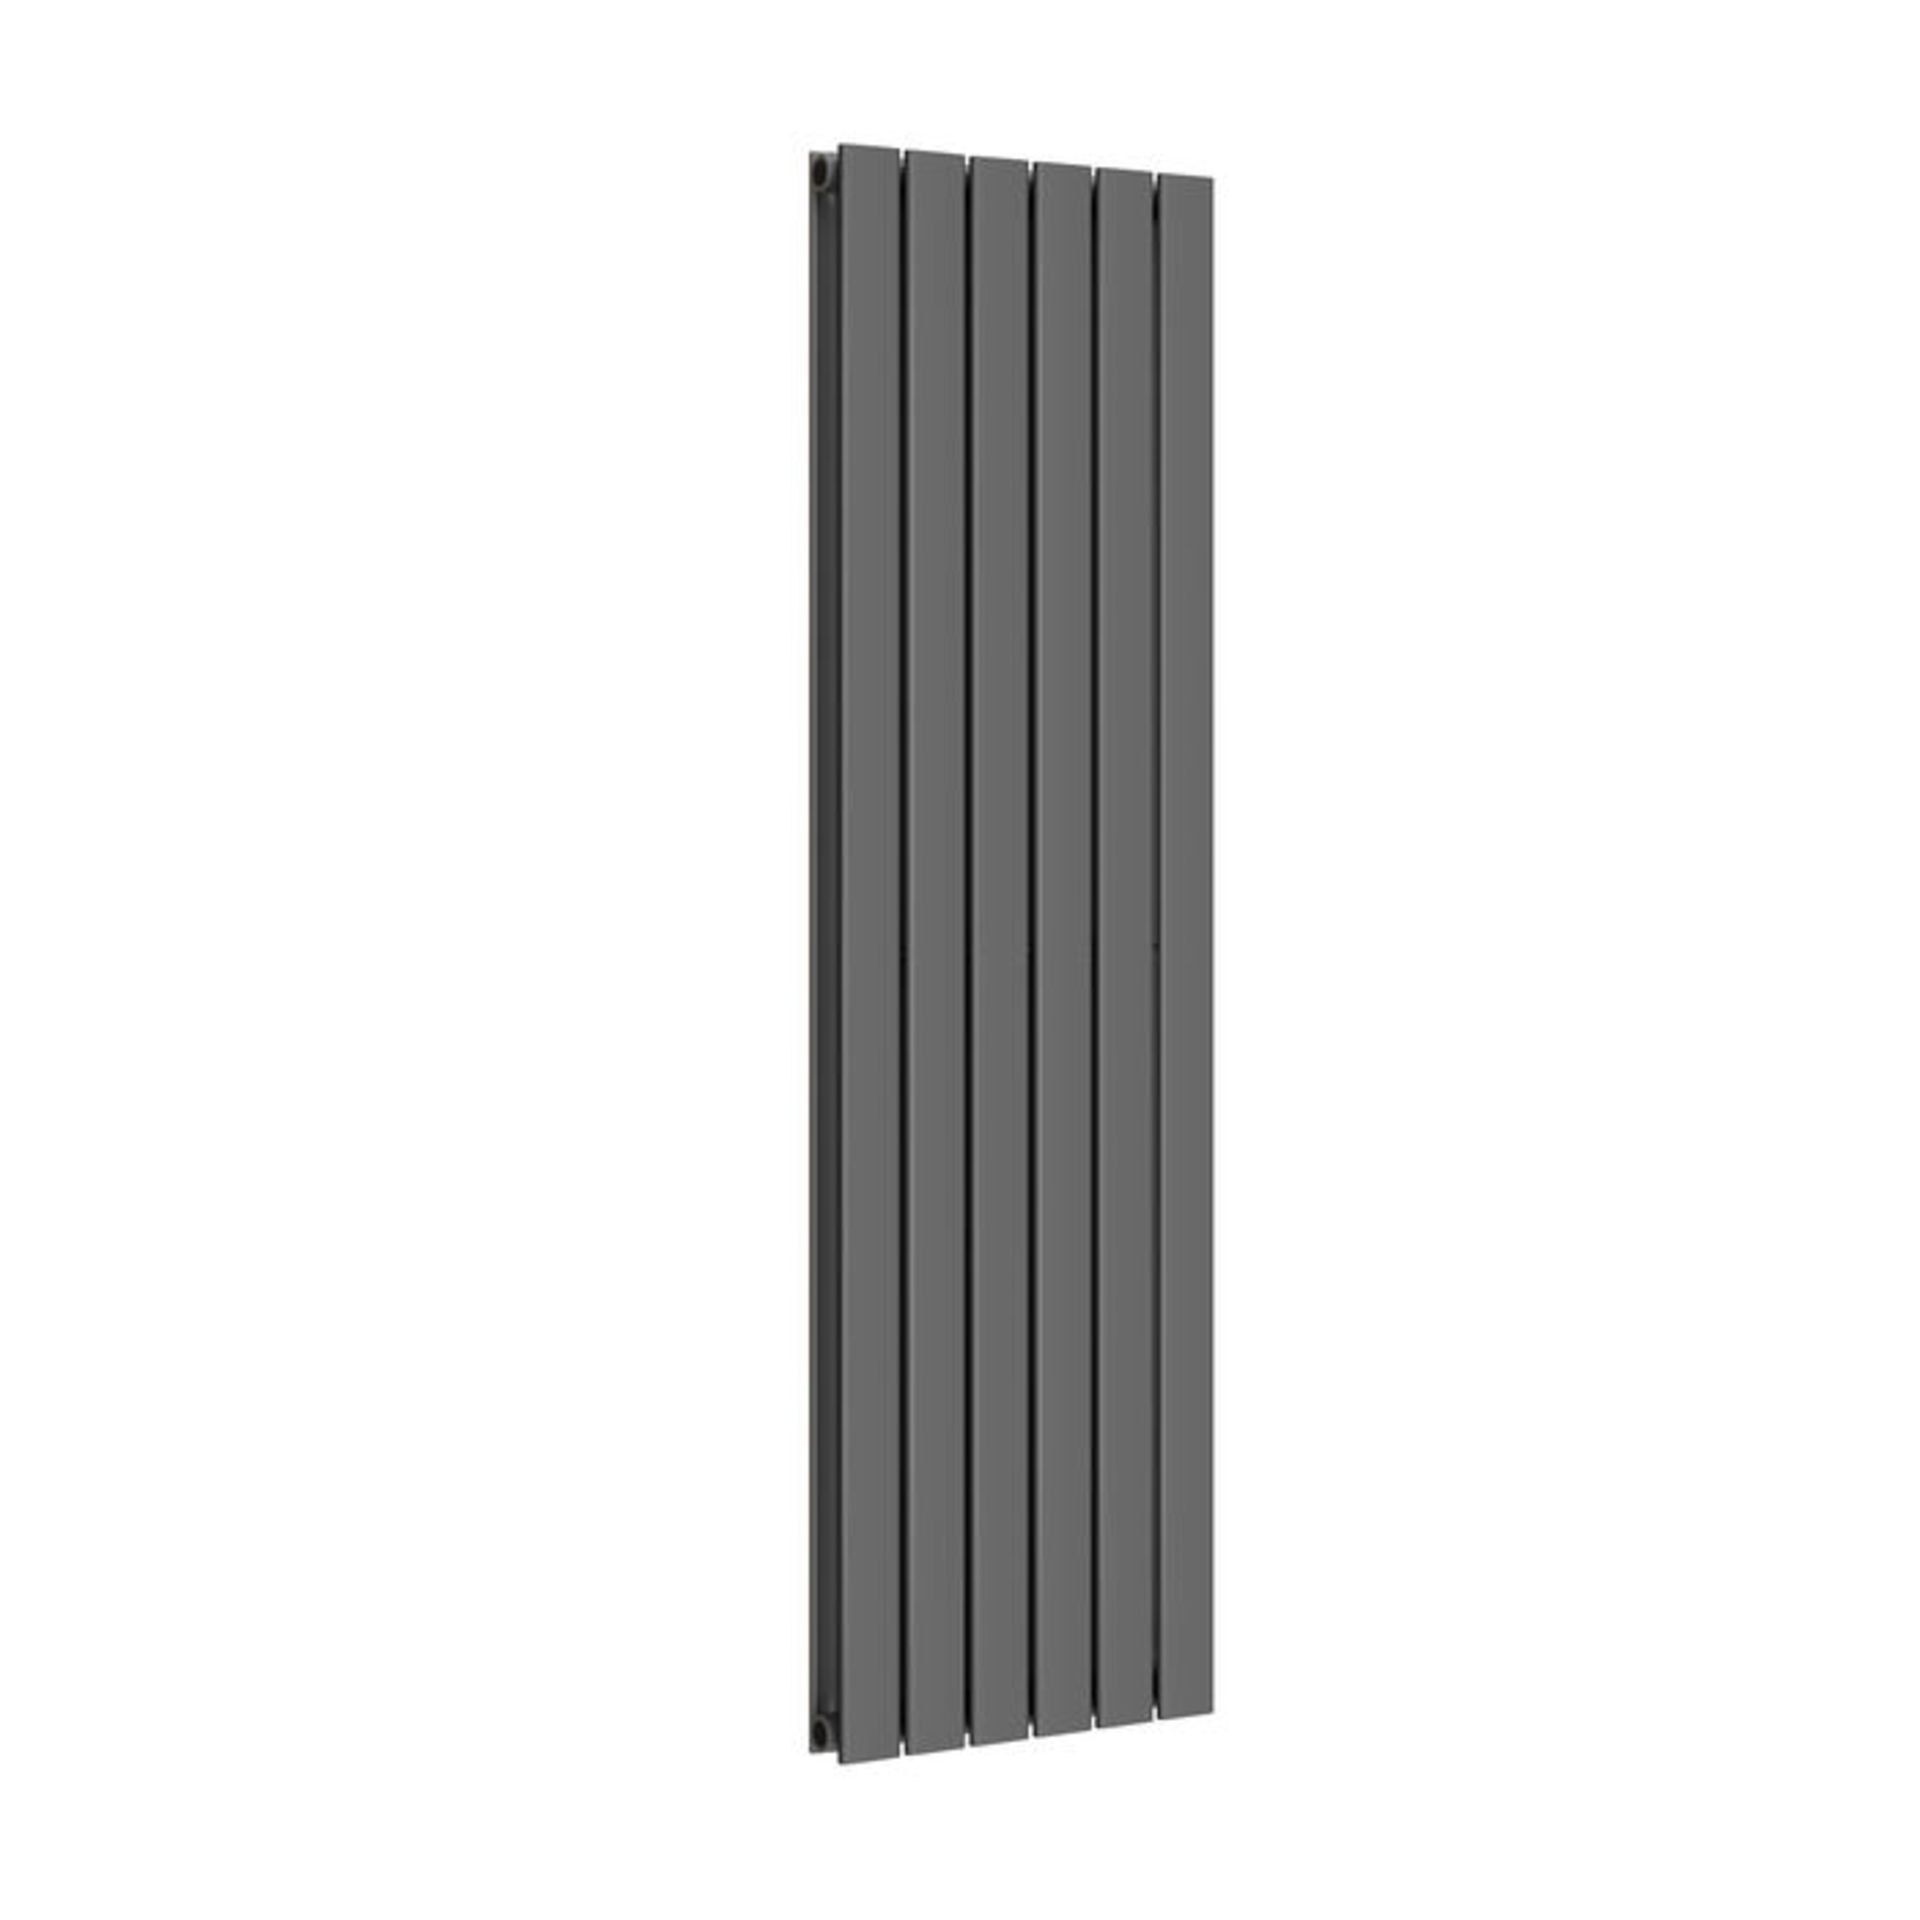 Lot 17 - 1600x480mm Anthracite Double Flat Panel Vertical Radiator. RRP £499.99. Made with low carbon s...